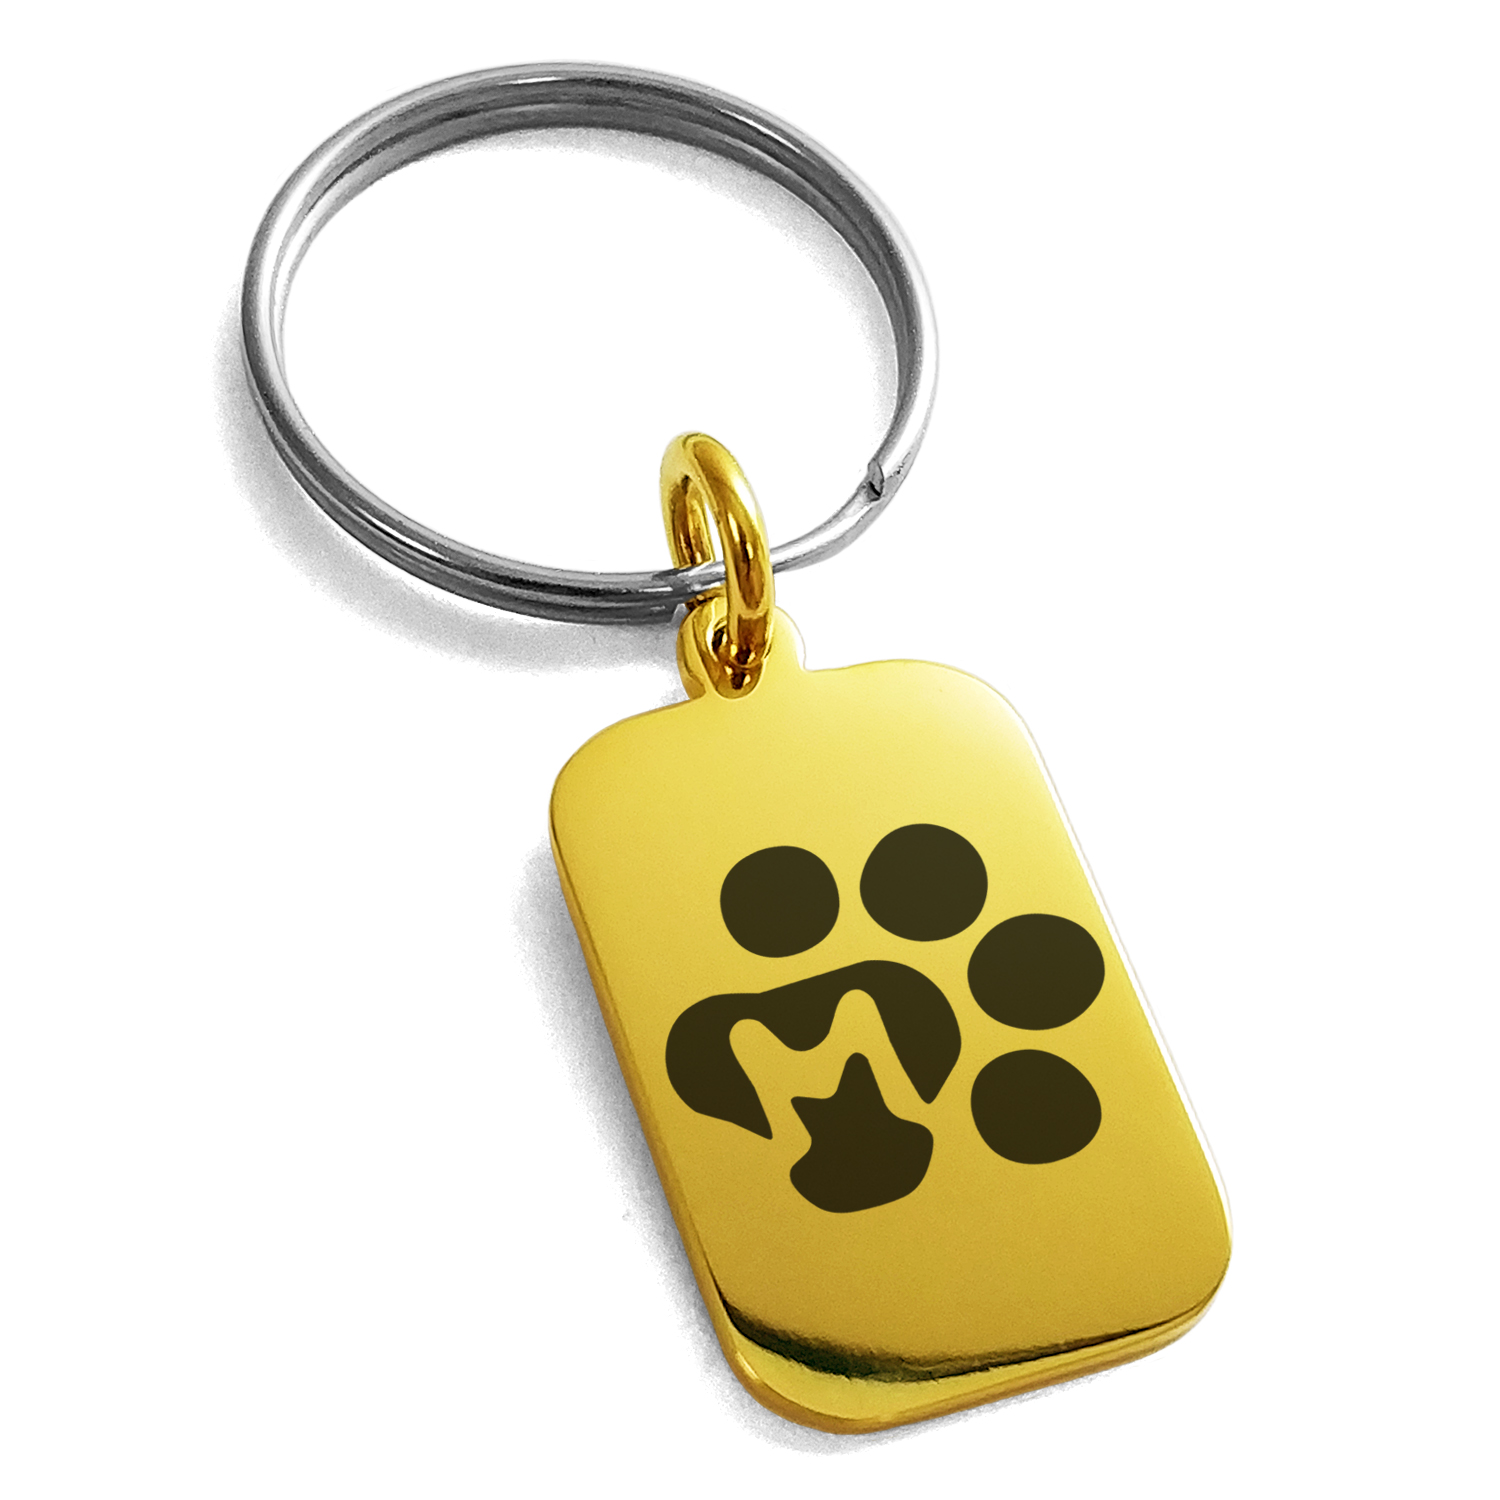 Stainless Steel Letter M Initial Cat Dog Paws Monogram Engraved Small Rectangle Dog Tag Charm Keychain Keyring